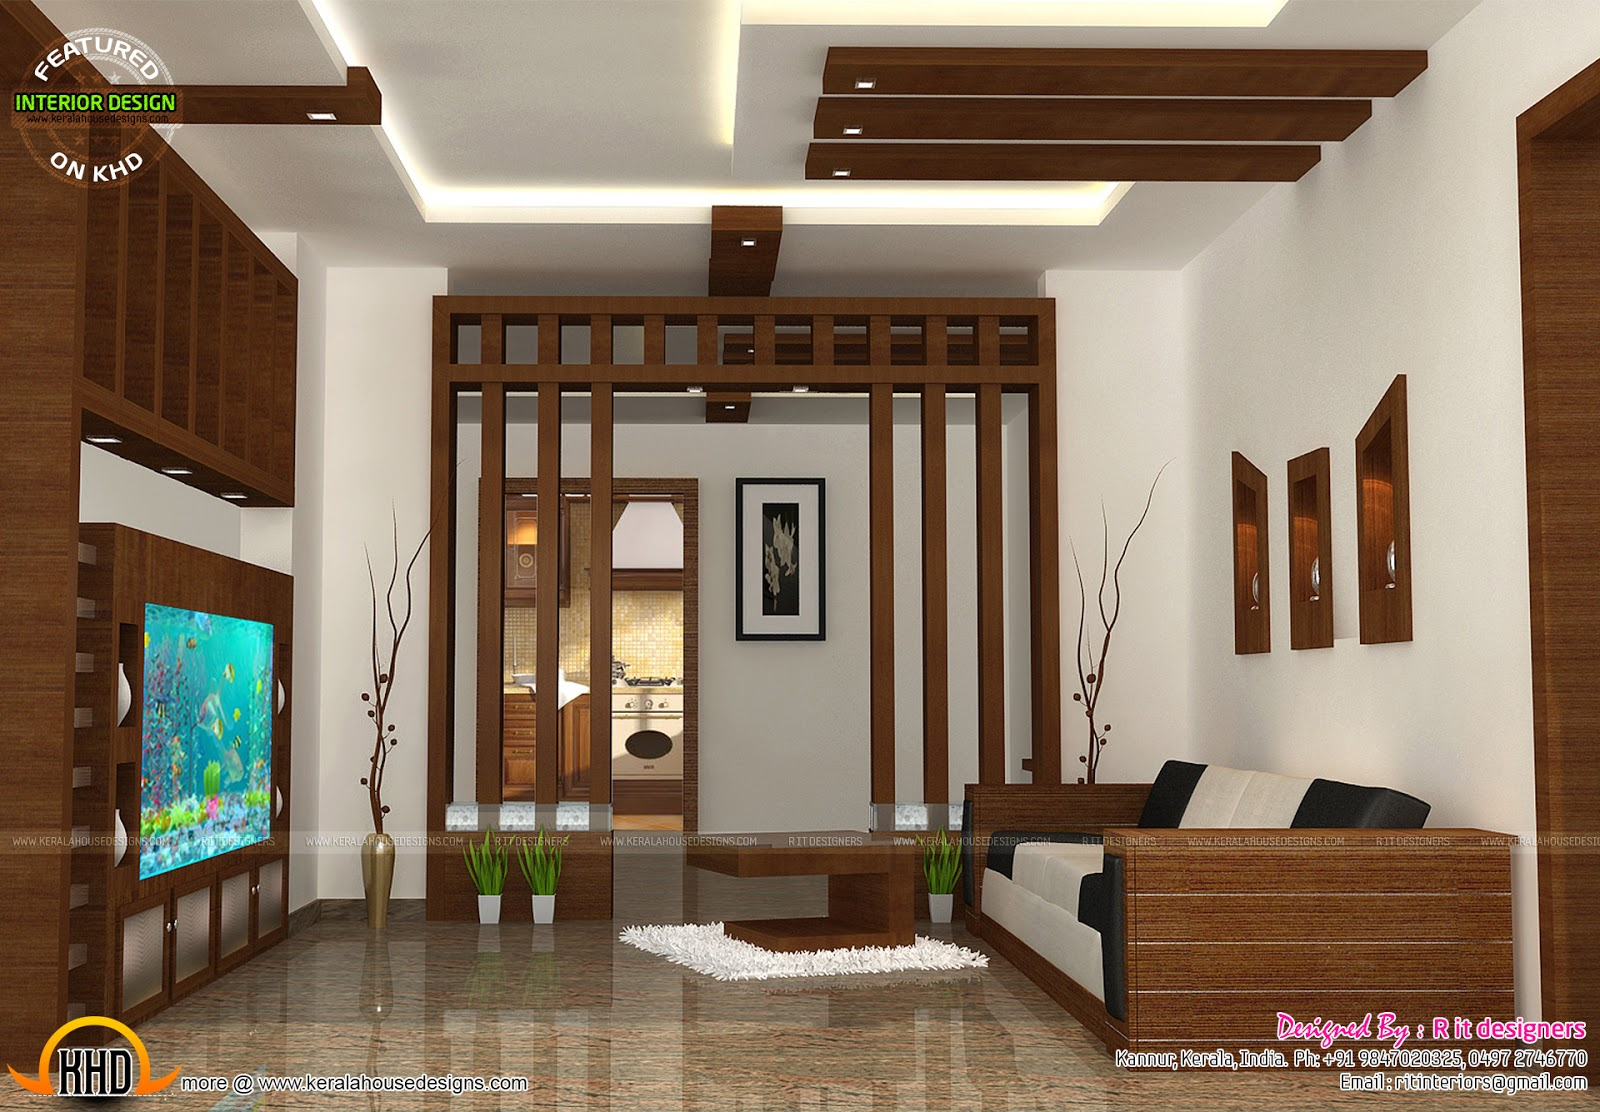 Wooden finish interiors kerala home design and floor plans for House design interior decorating